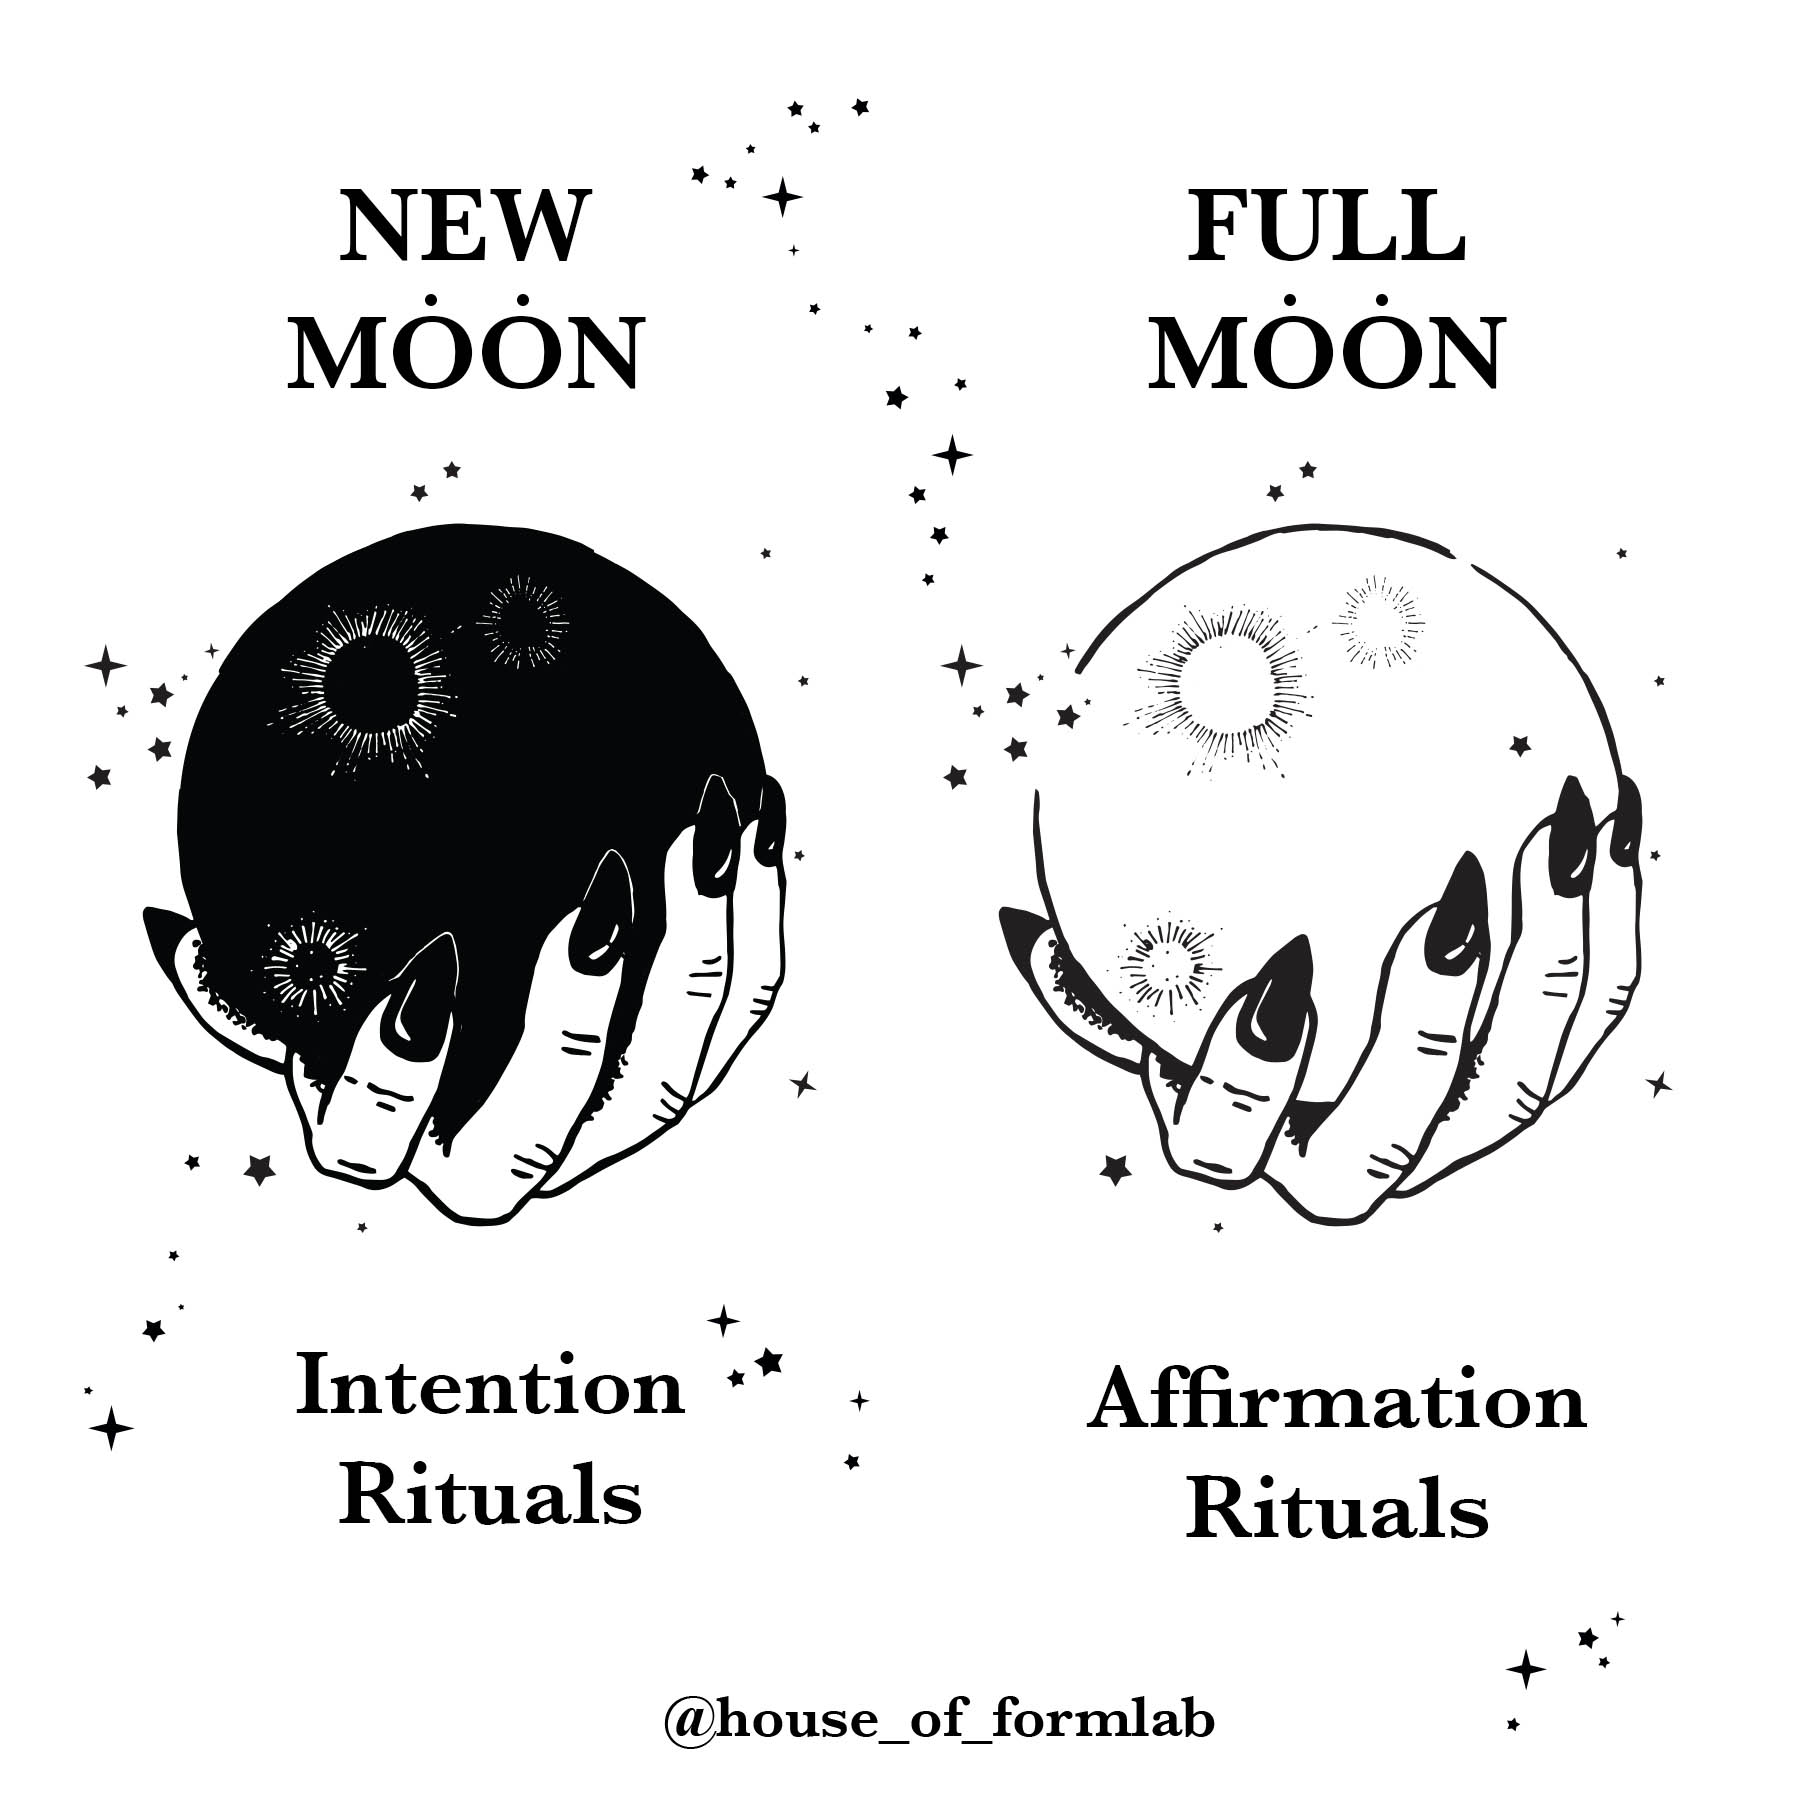 House of Formlab New Moon vs Full Moon Rituals Infographic